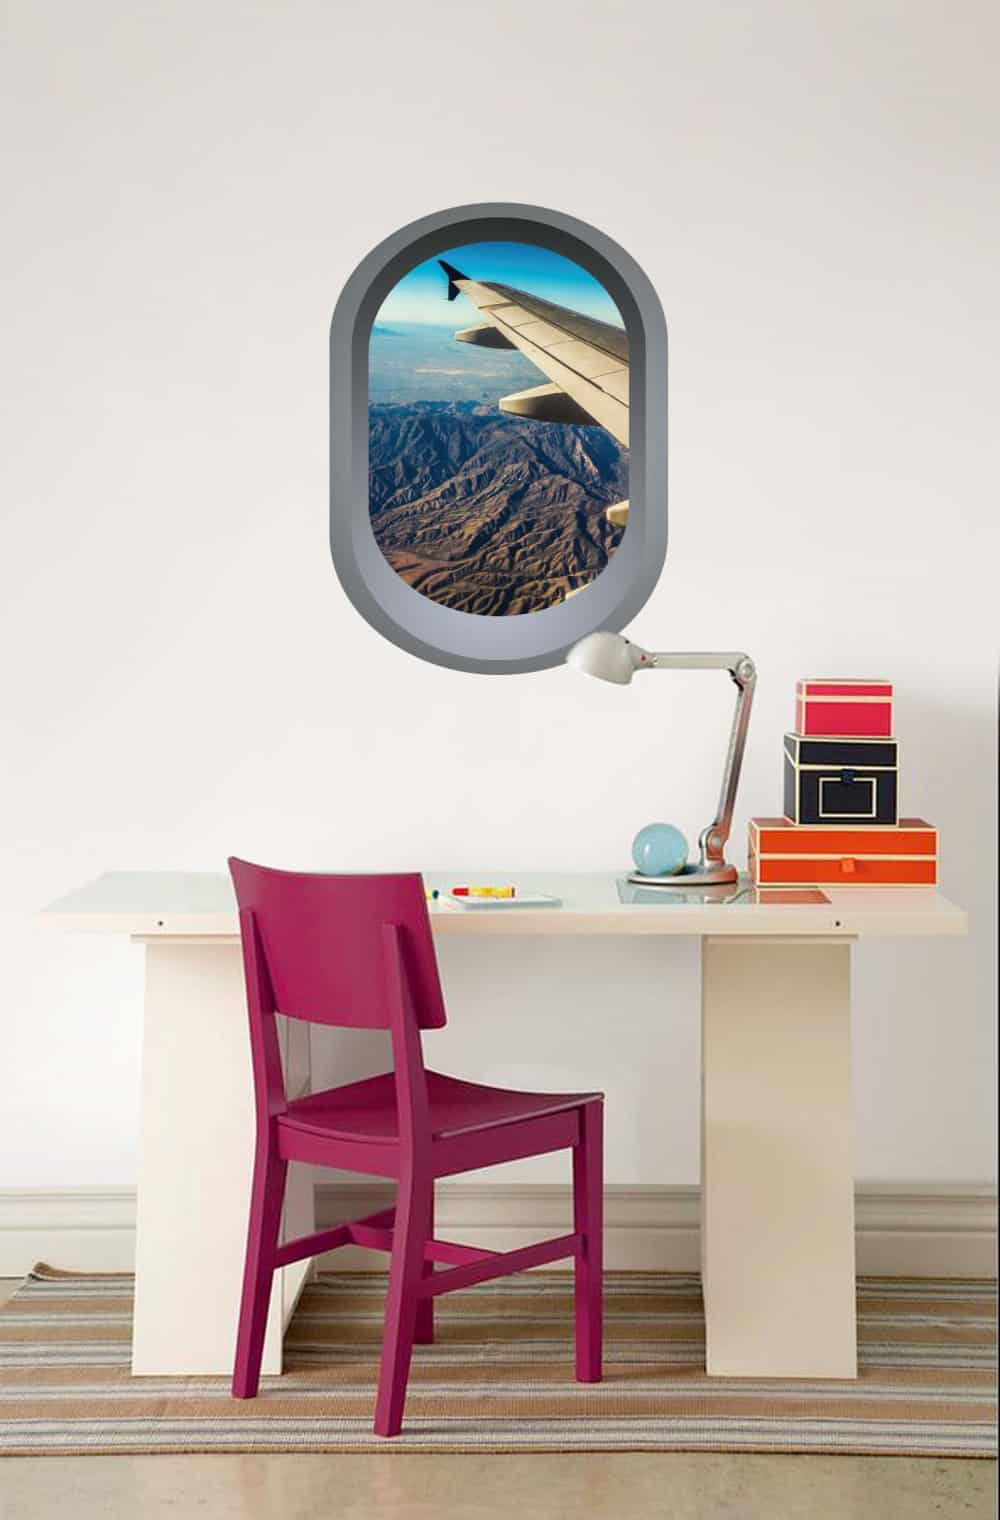 Aeroplane window illusion Study room decal